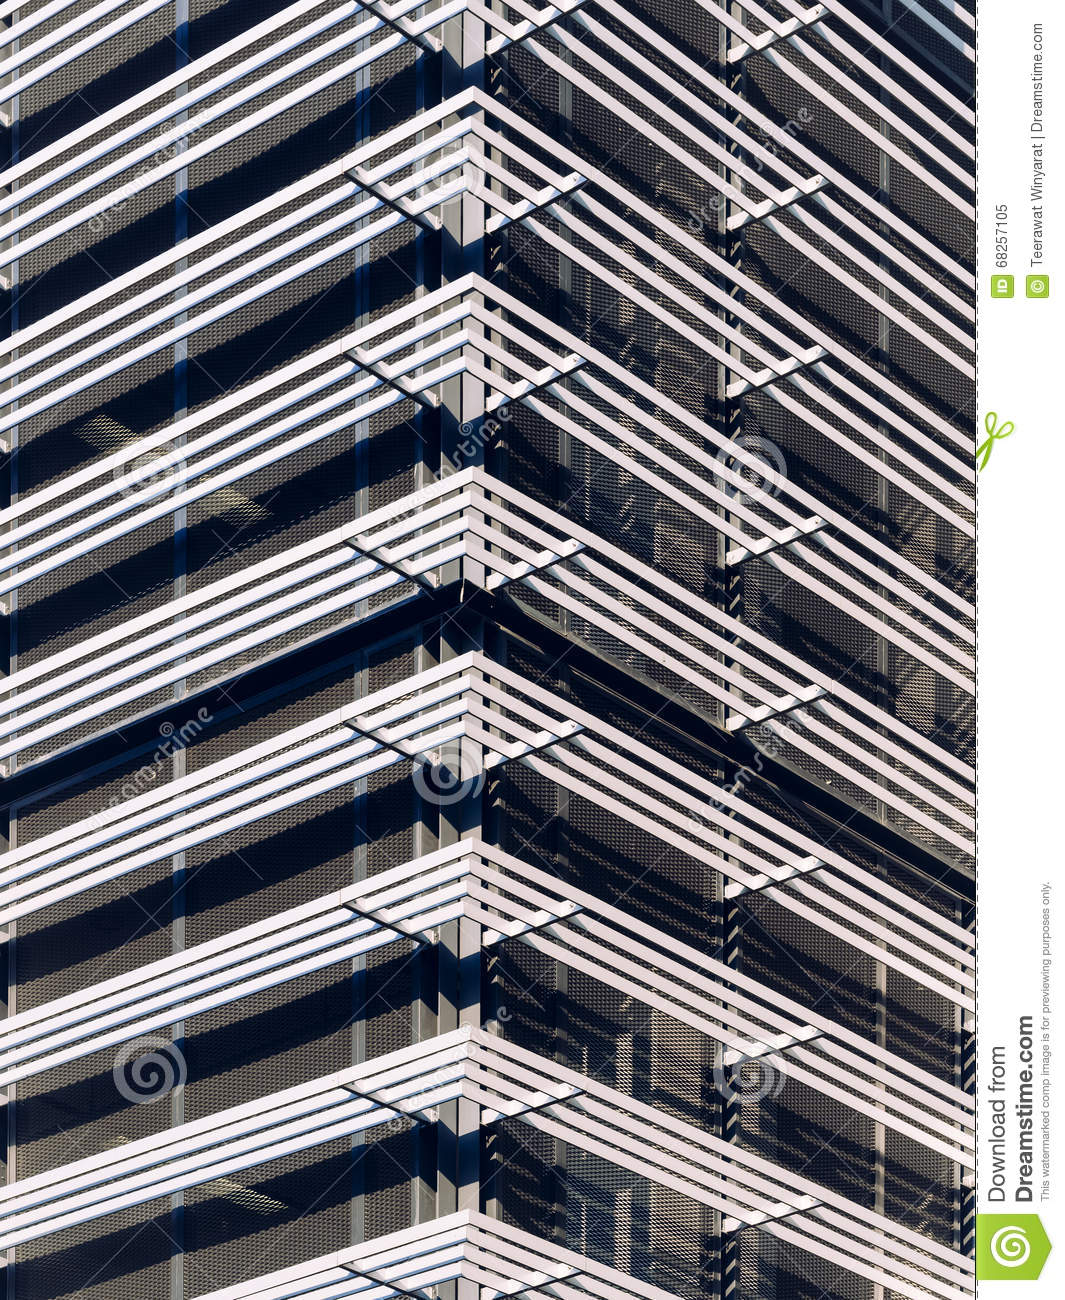 Facade pattern architecture  Architecture Details Modern Facade Pattern Structure Stock Photo ...